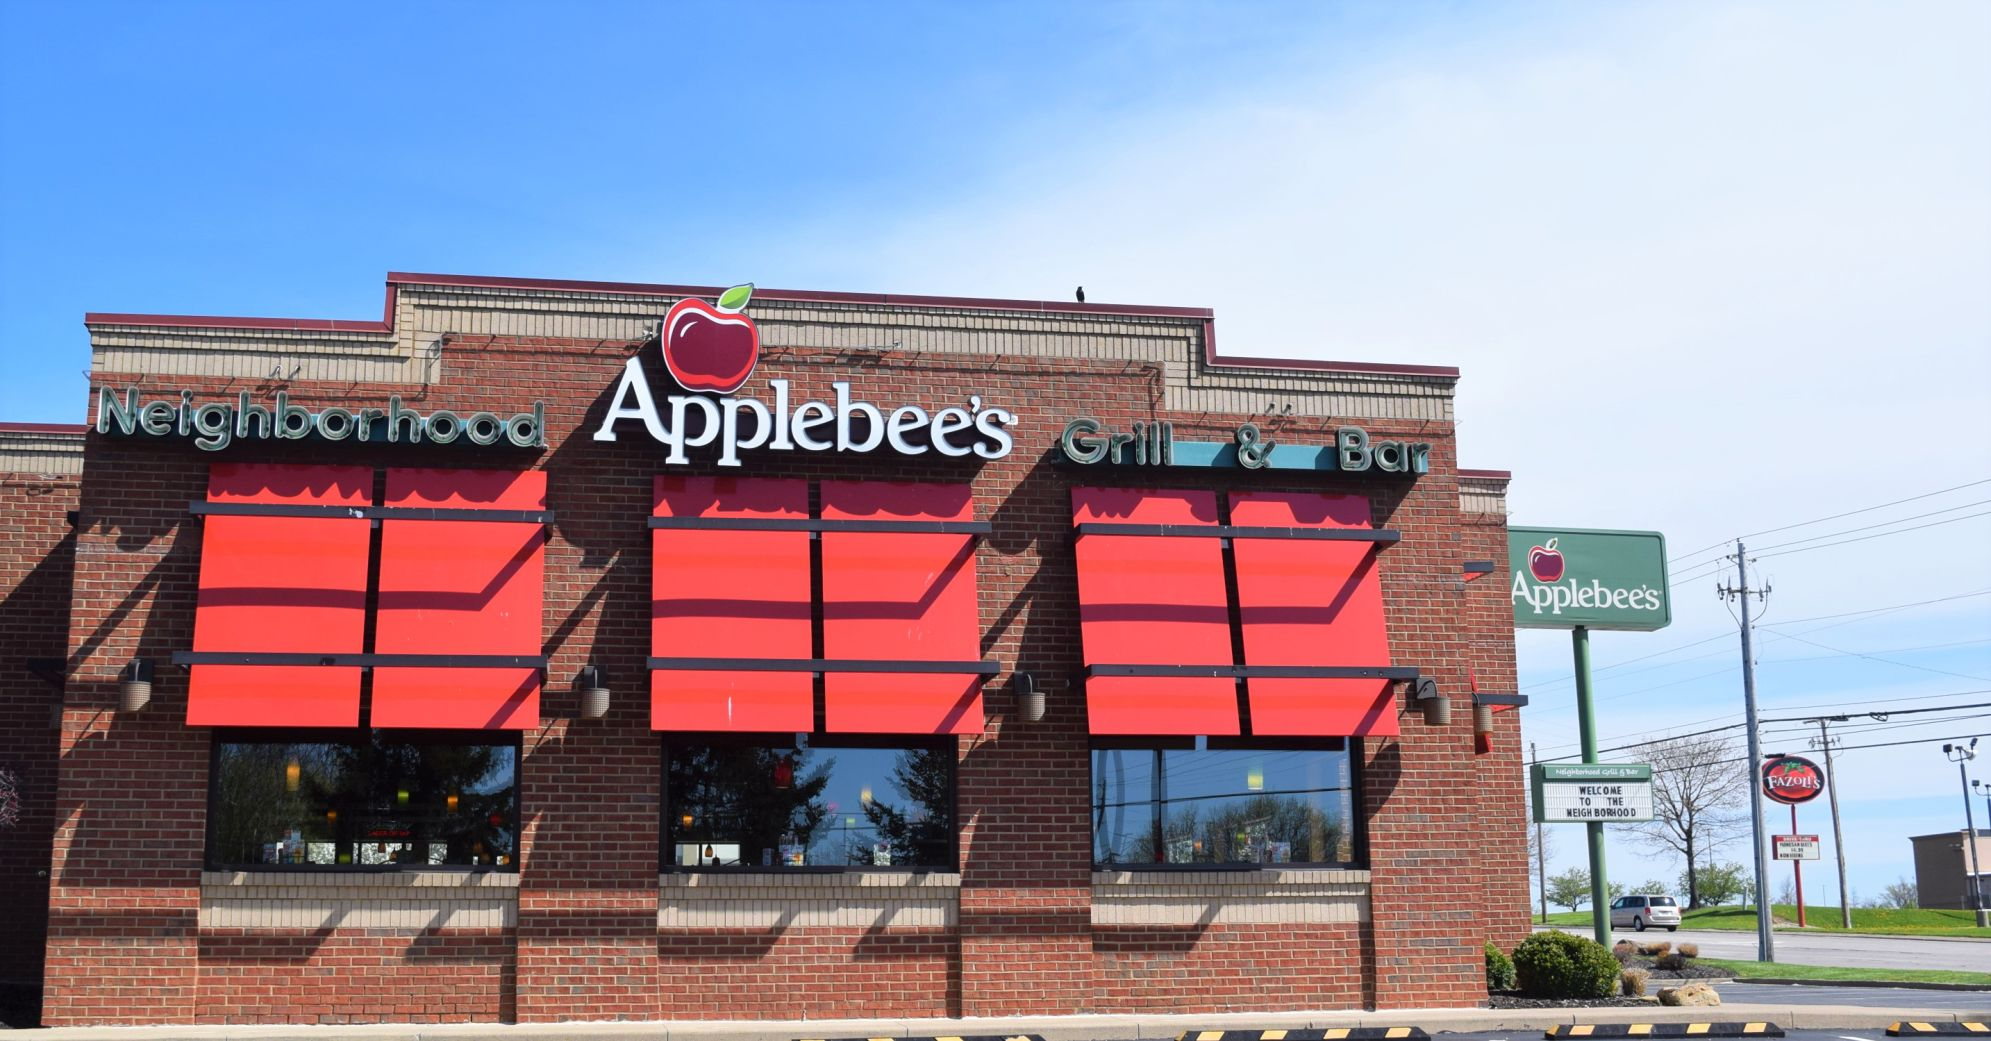 Building that houses Applebee's Grill + Bar sold for $3.4 million in Ontario